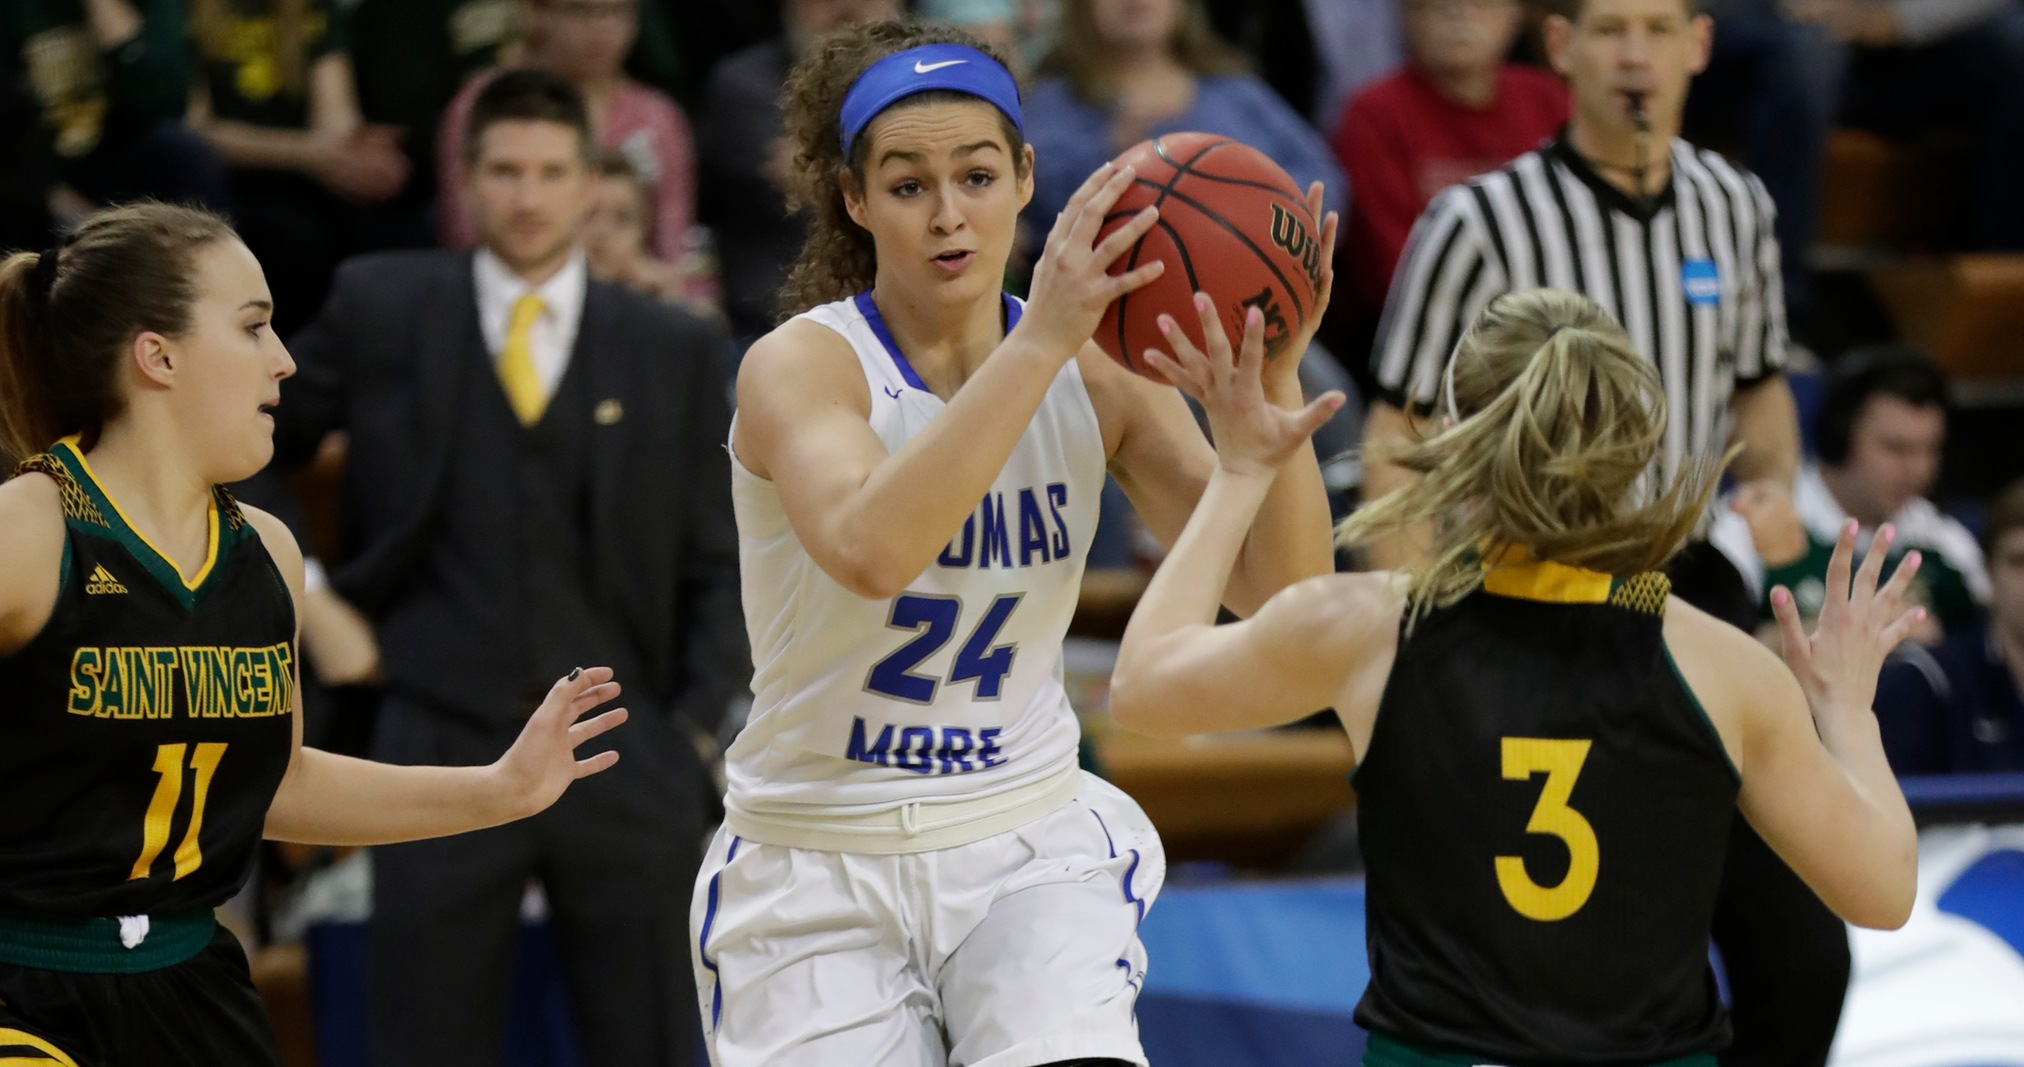 No. 1-Ranked Thomas More Defeats Saint Vincent, 79-54, in NCAA First Round